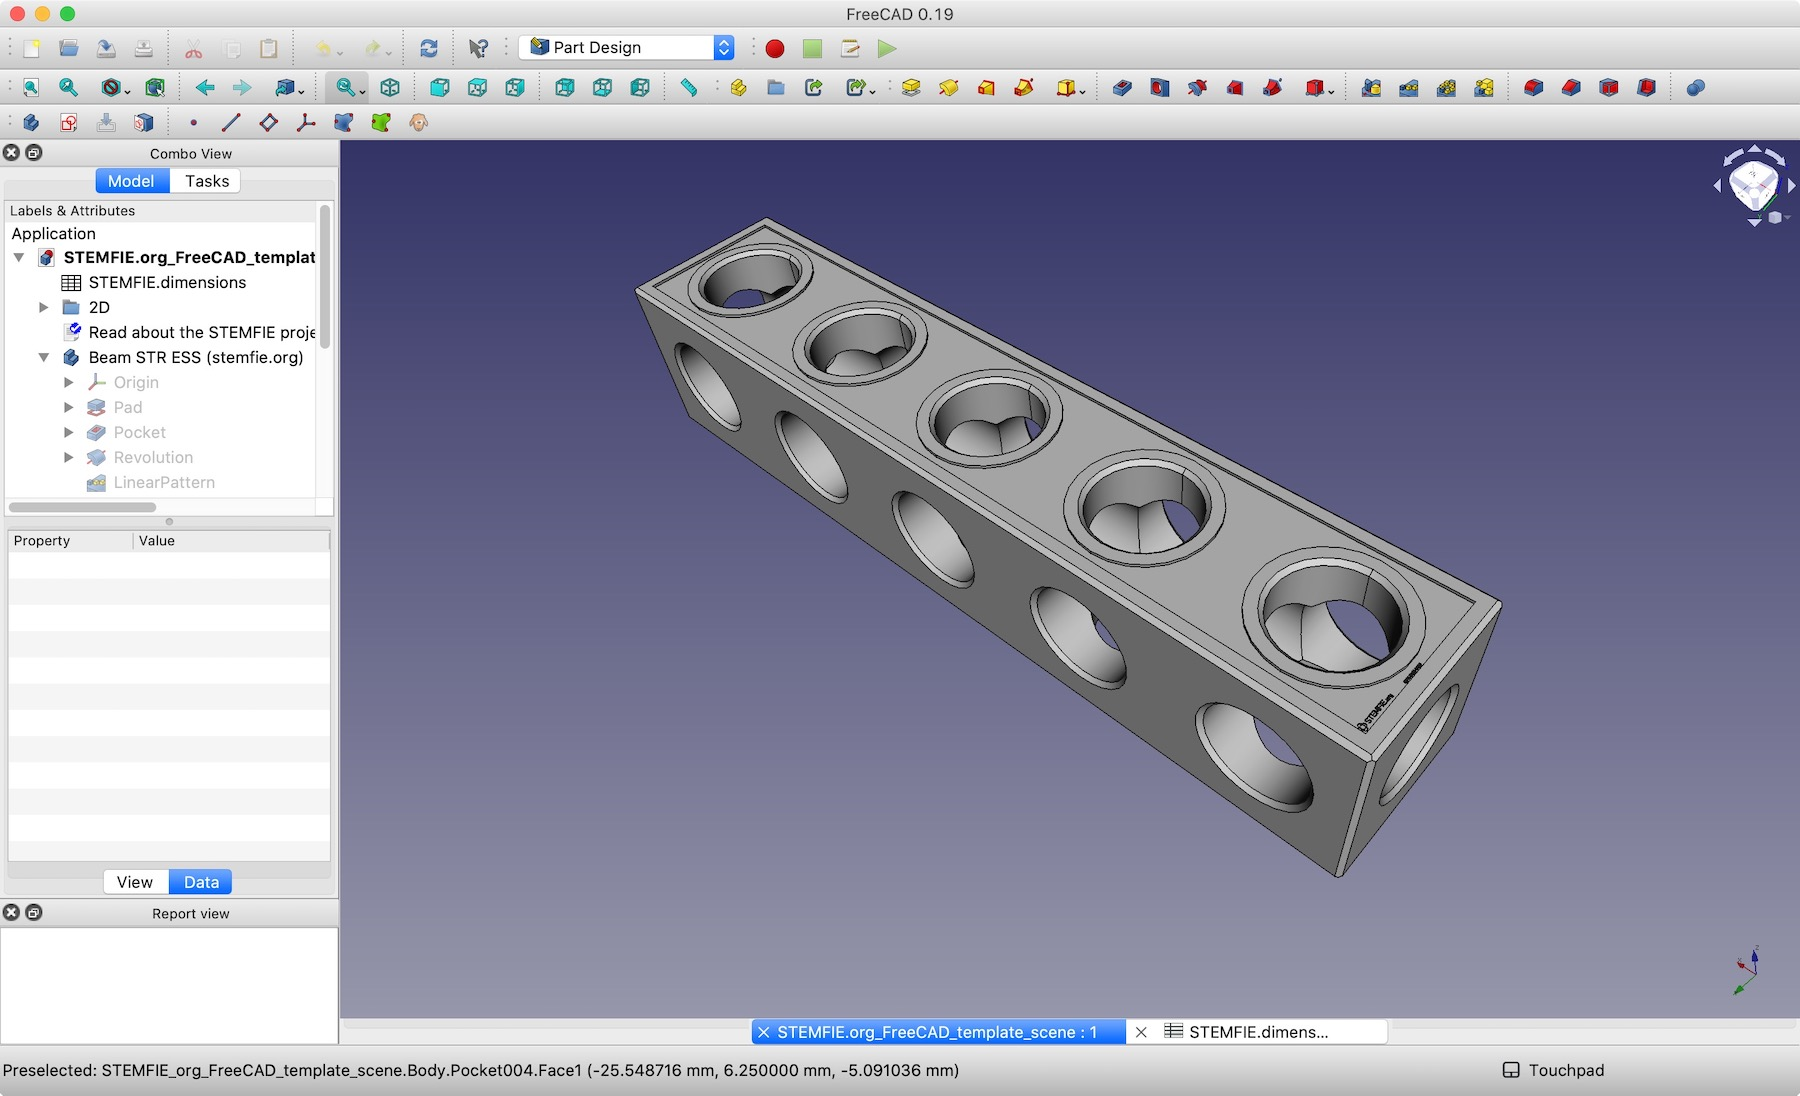 STEMFIE.org FreeCAD template scene screenshot